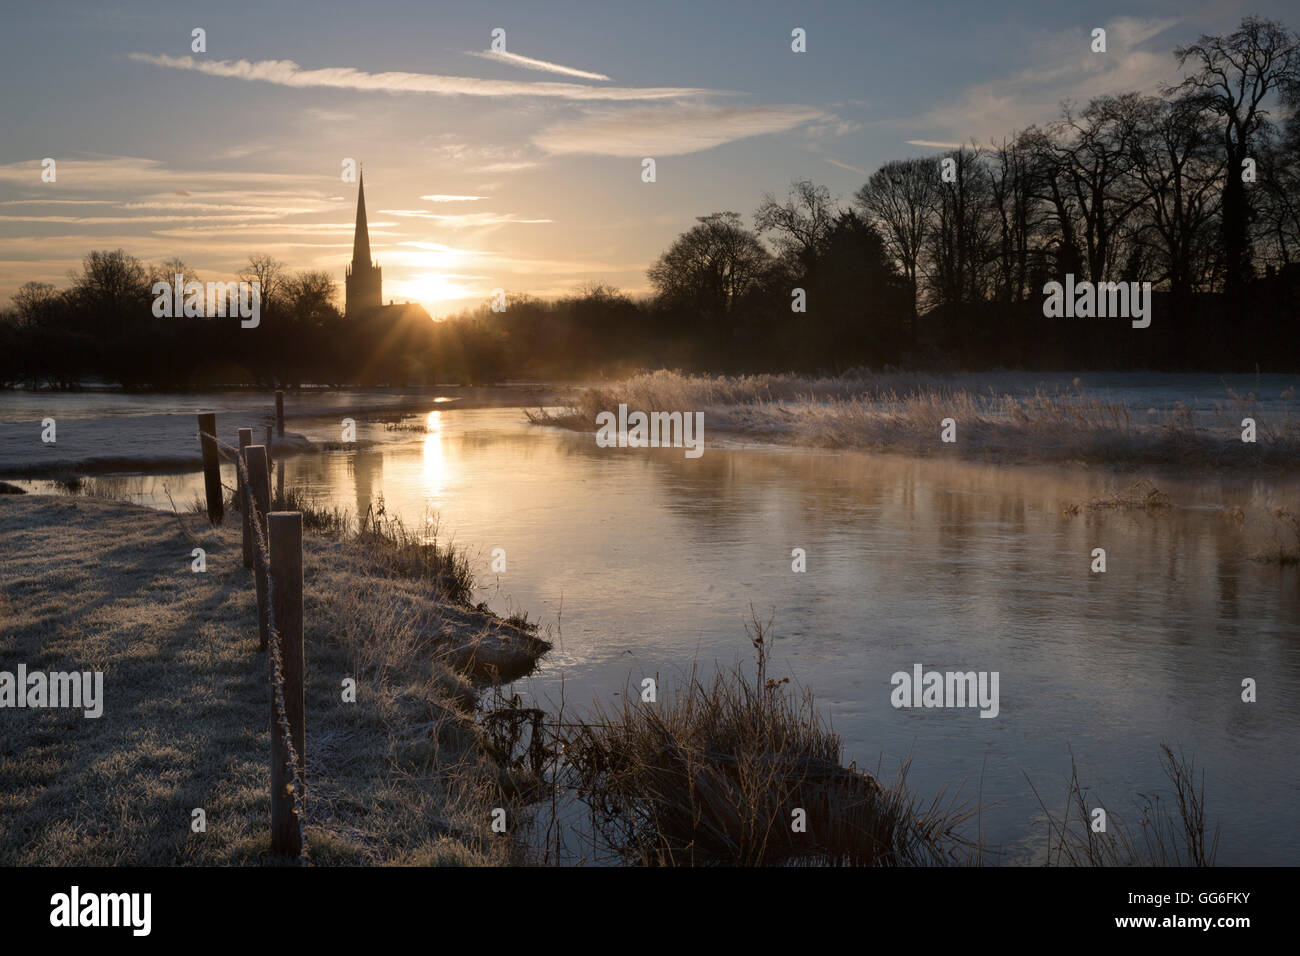 Burford church and River Windrush on frosty winter morning, Burford, Cotswolds, Oxfordshire, England, United Kingdom, - Stock Image